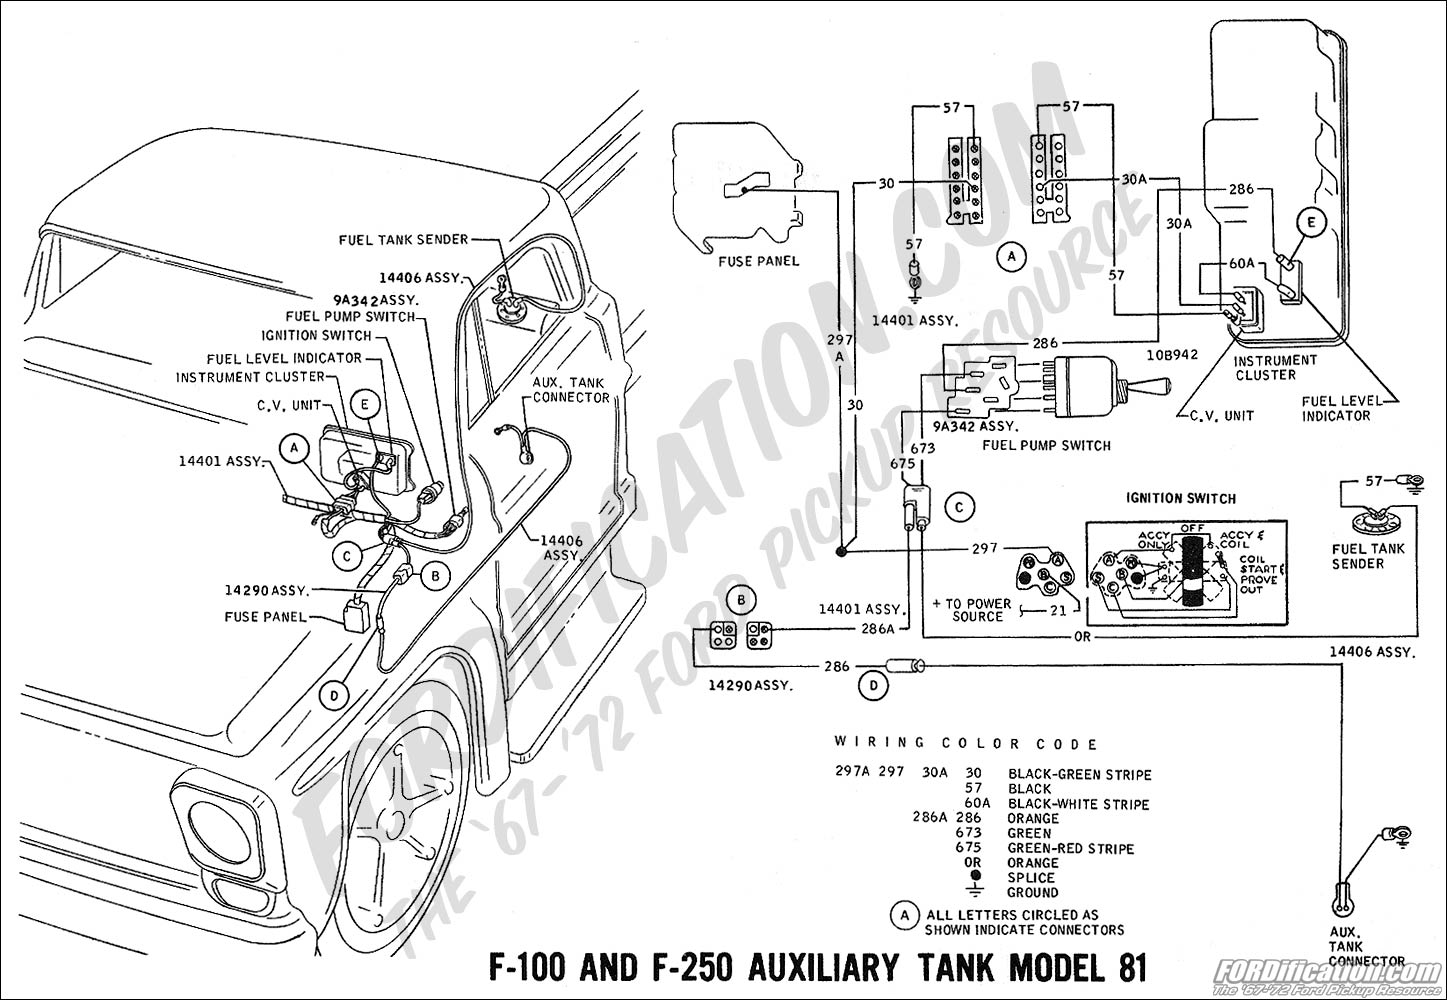 Showthread together with 88 F150 Steering Column Wiring Diagram furthermore Factory Radio Wiring Diagram likewise Fleetwood Pace Arrow Rv Wiring Diagrams moreover Engine Shroud Covers. on 1989 chevy custom